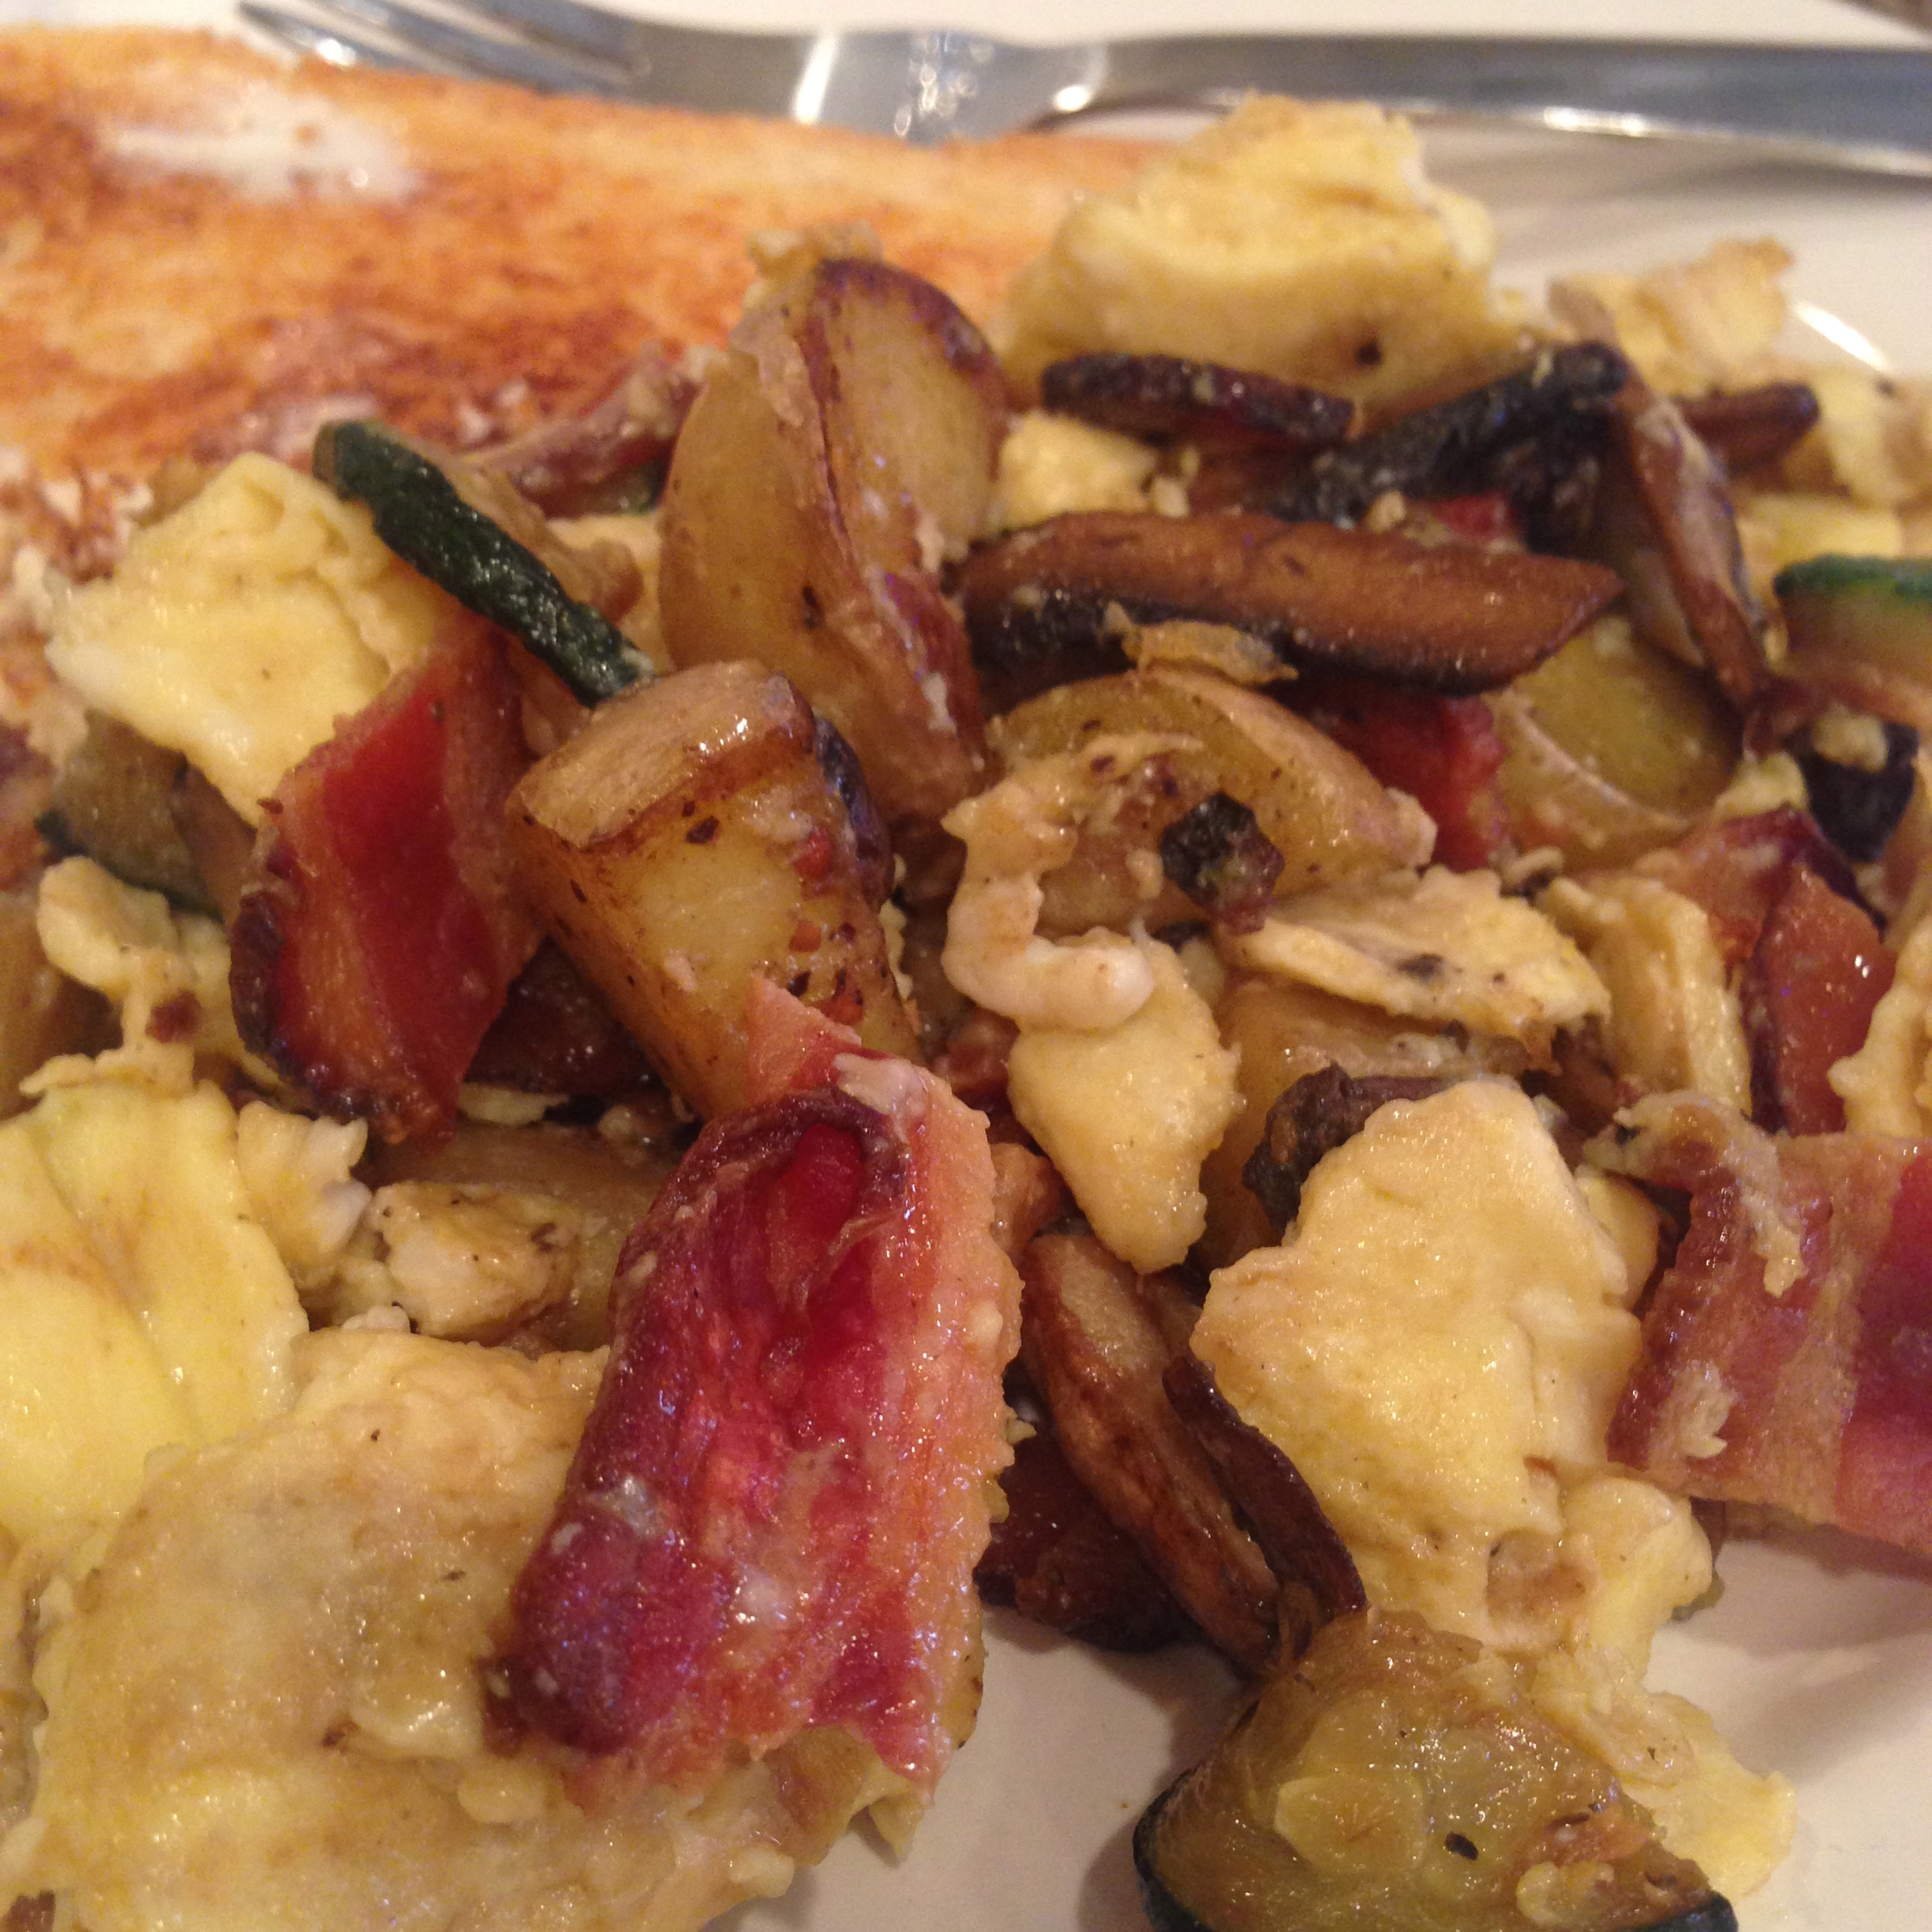 Bacon, Zucchini, Mushroom and Potato Scramble